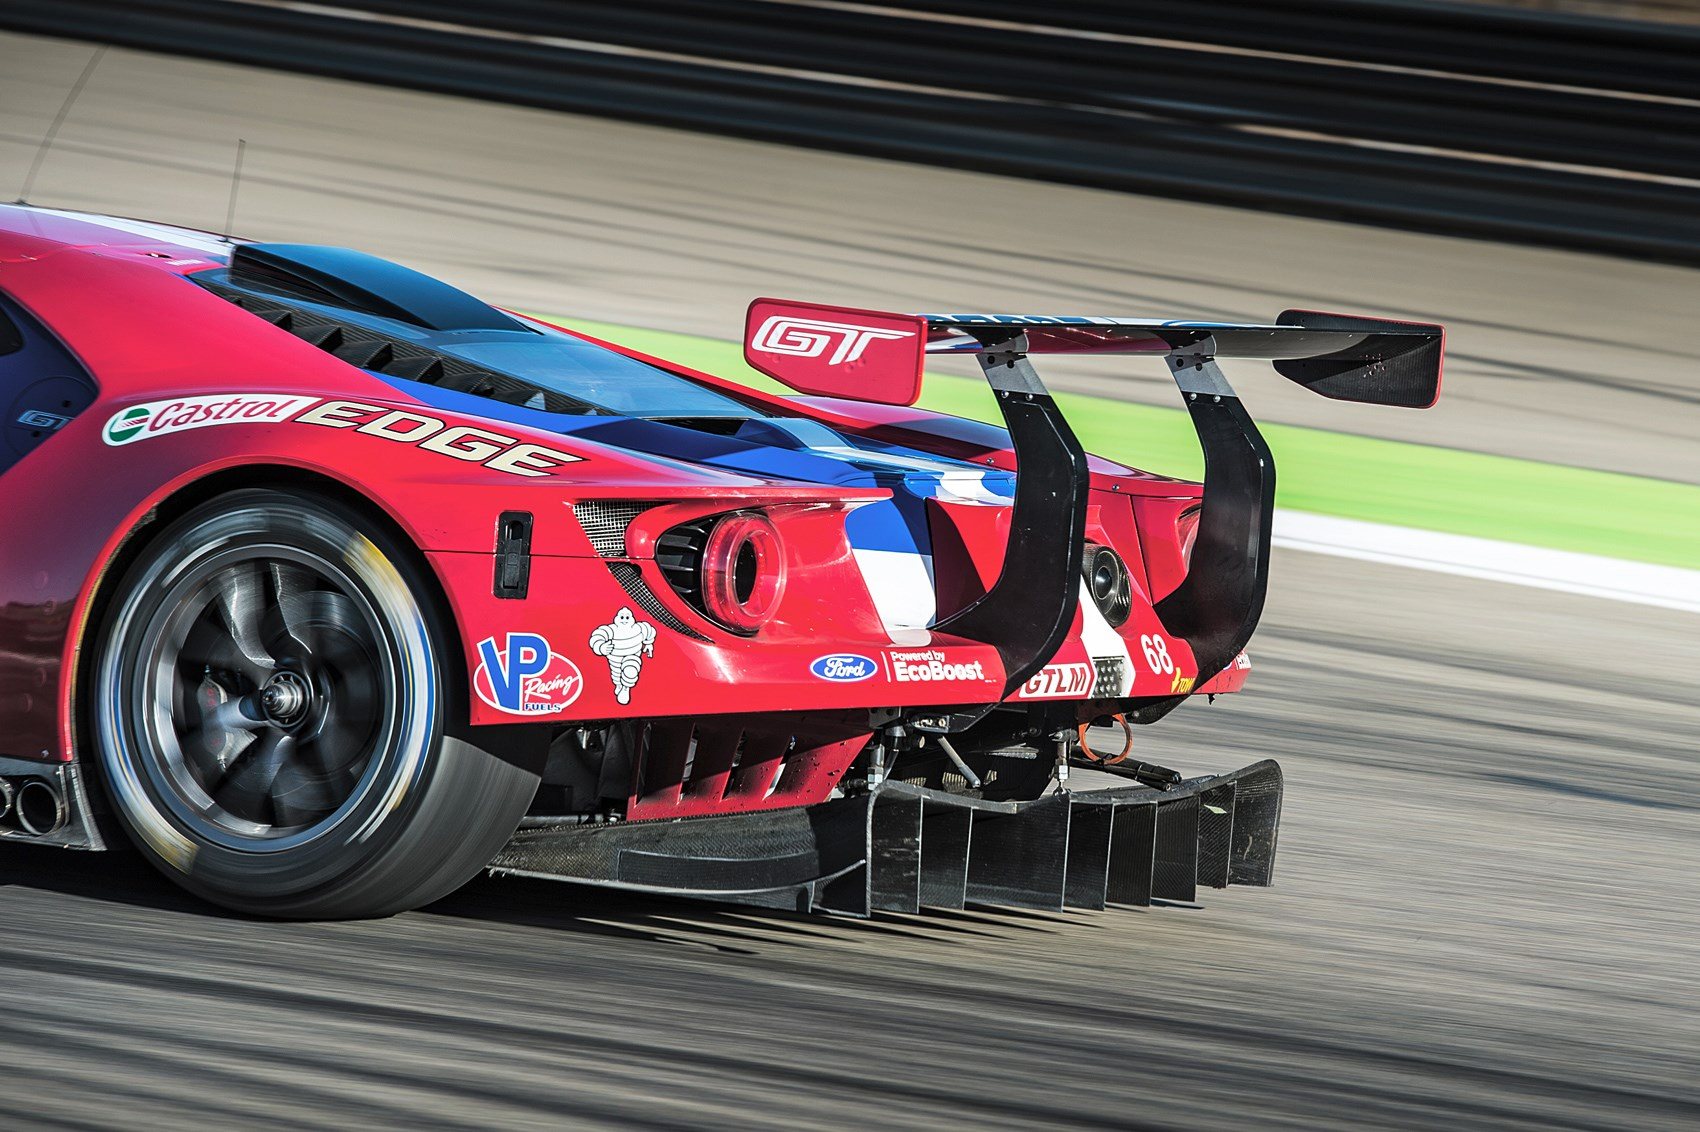 Electric Cars For Sale >> Day of reckoning: Ford GT road car vs GTE LM racer | CAR Magazine